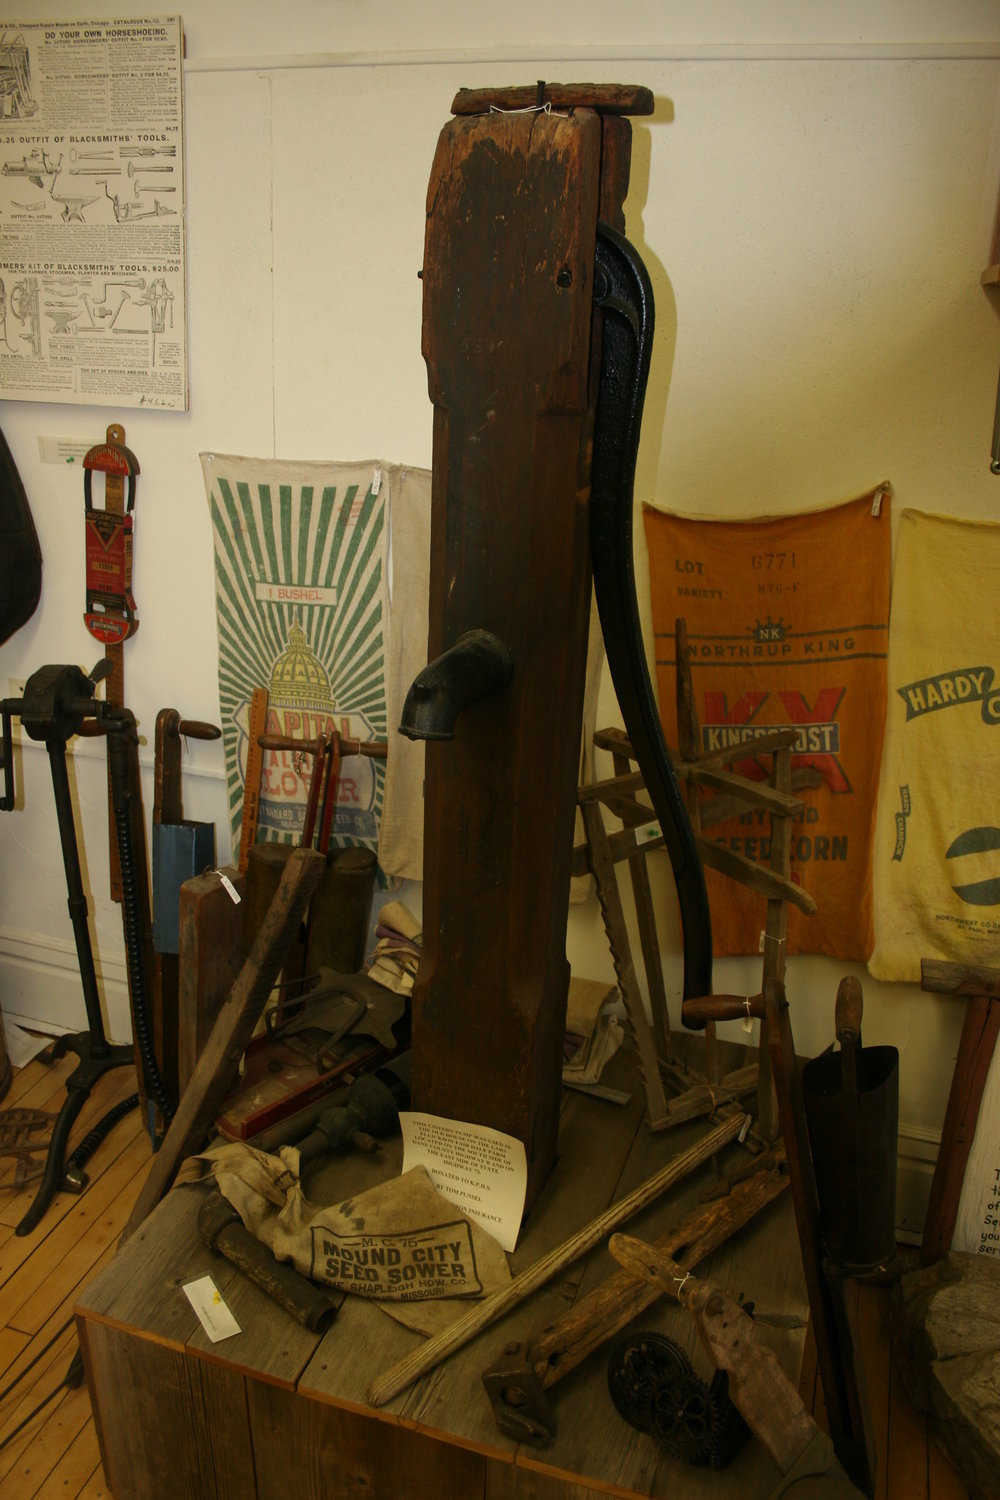 This wooden pump served an area farmer many years ago. Tools, implements and grain sacks were found in every barn.